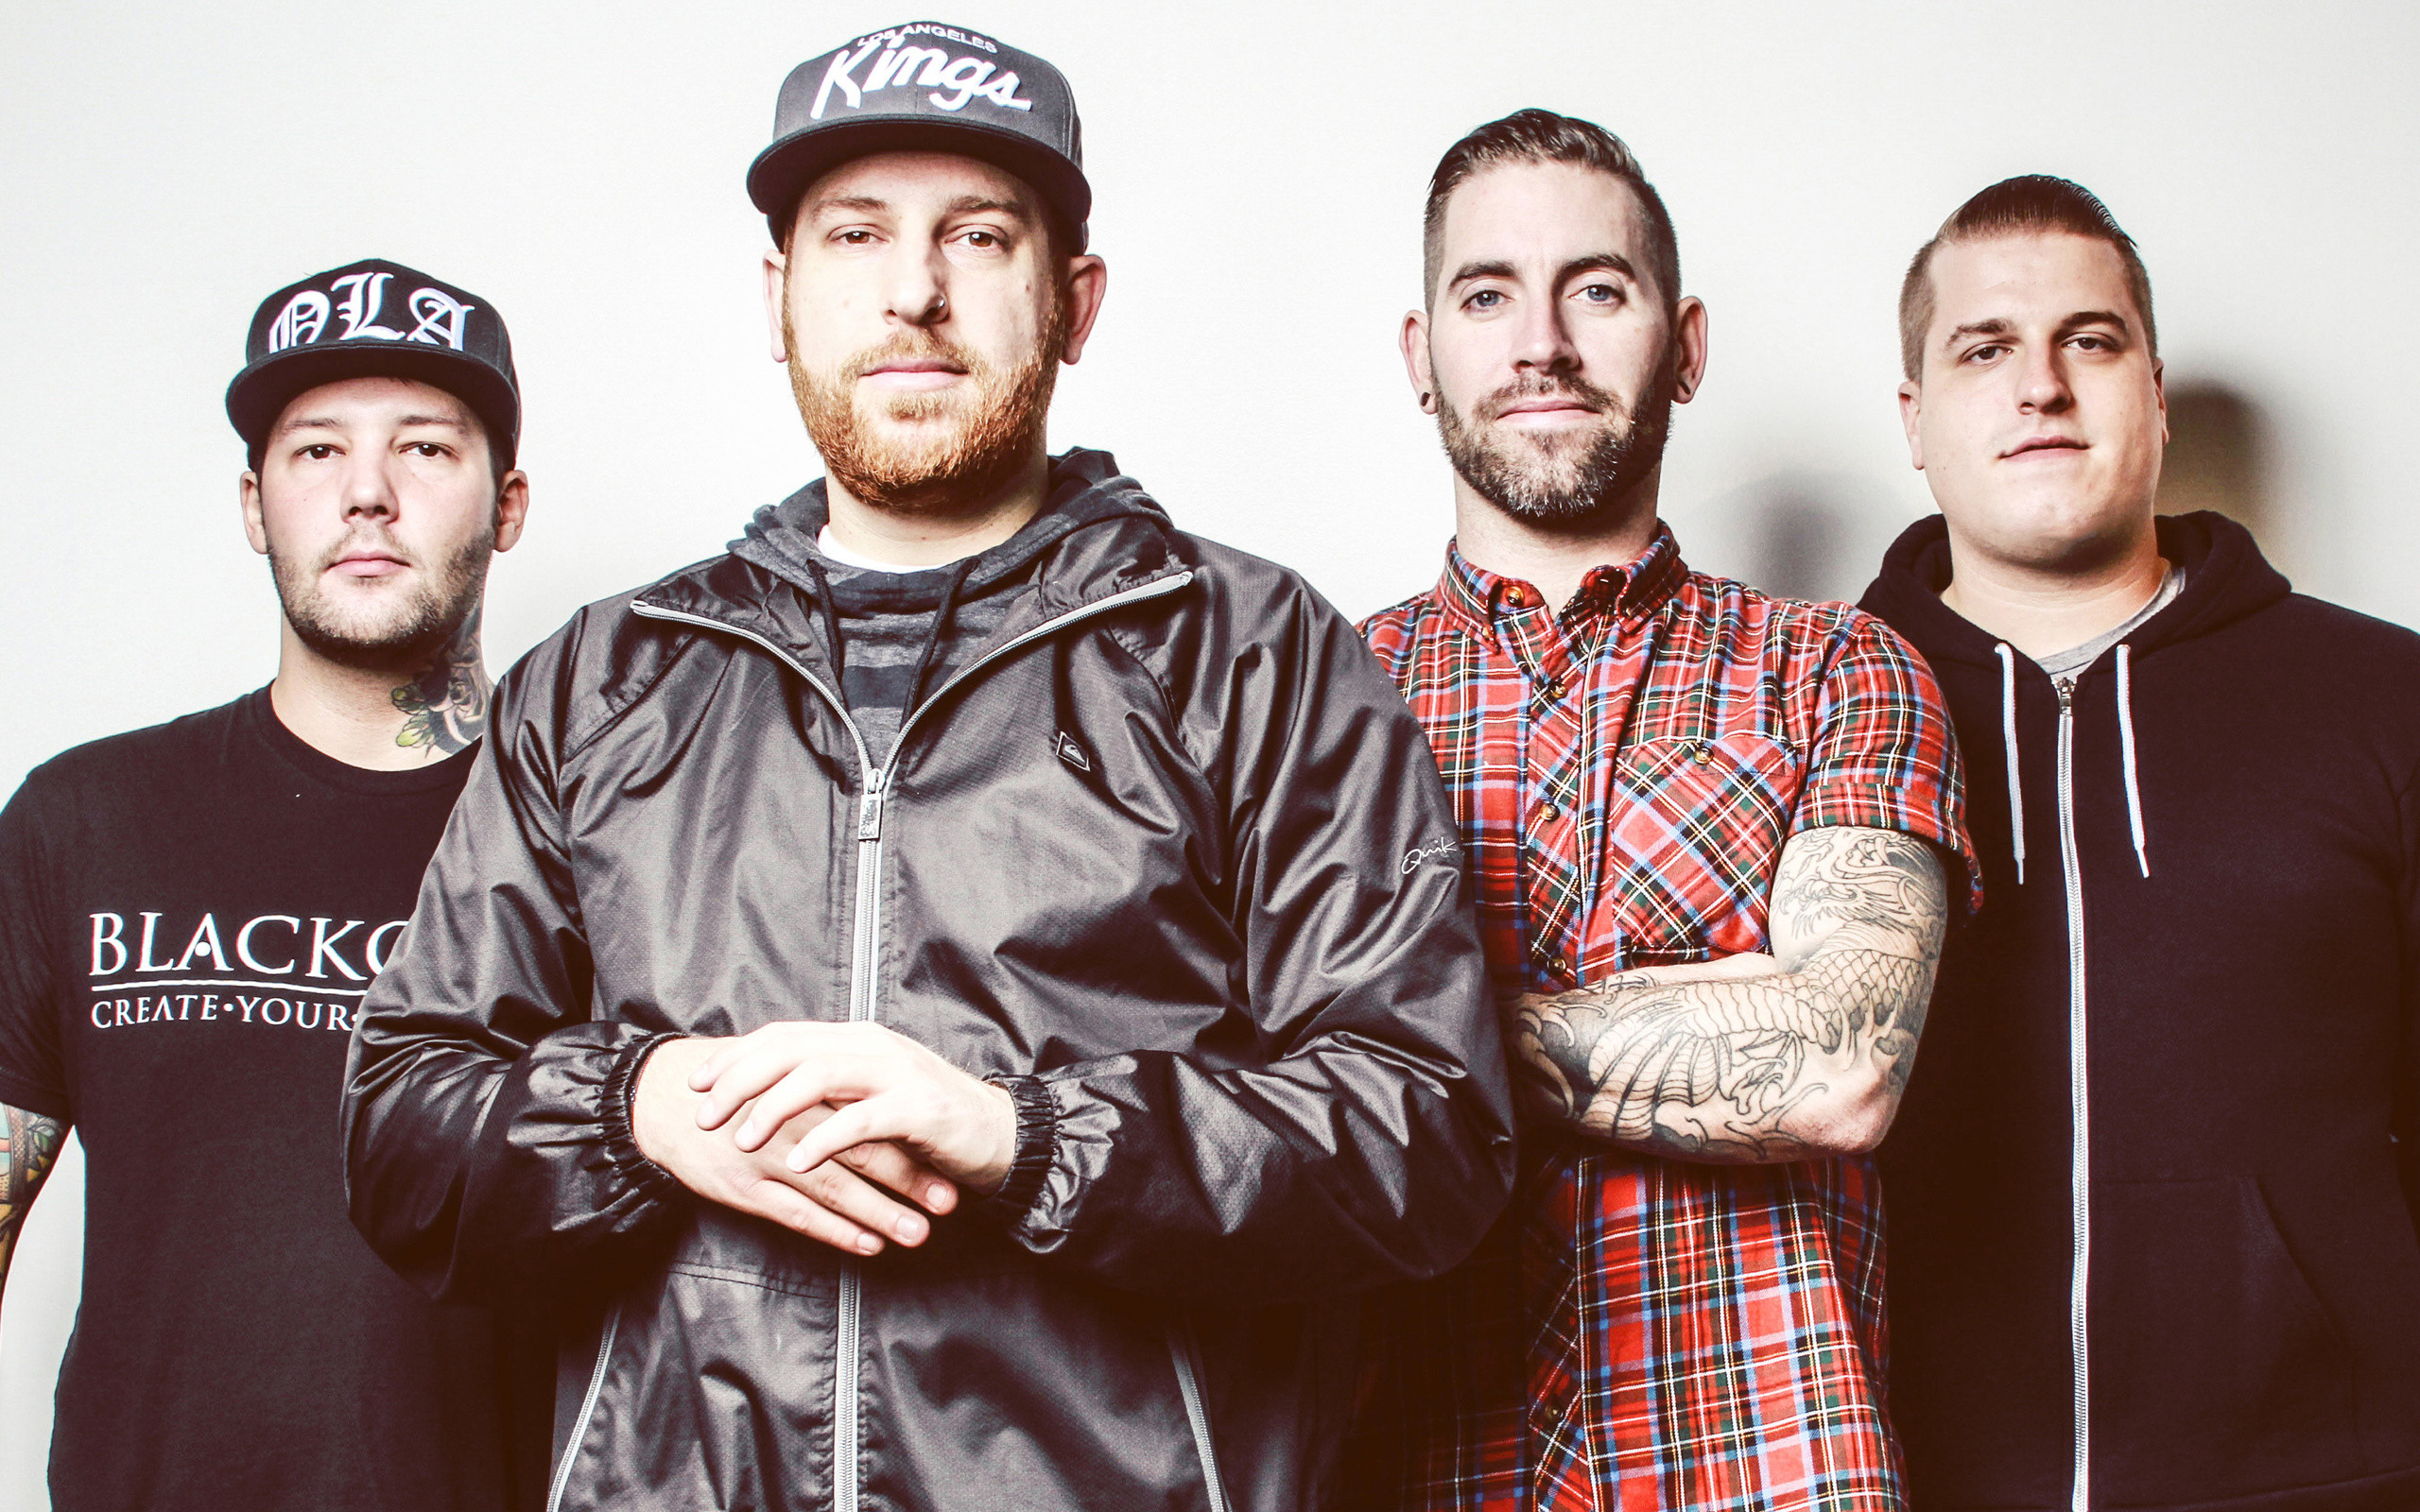 Res: 2560x1600, The Ghost Inside, Music Band, Metalcore, Punk, Zach Johnson, Jim Riley